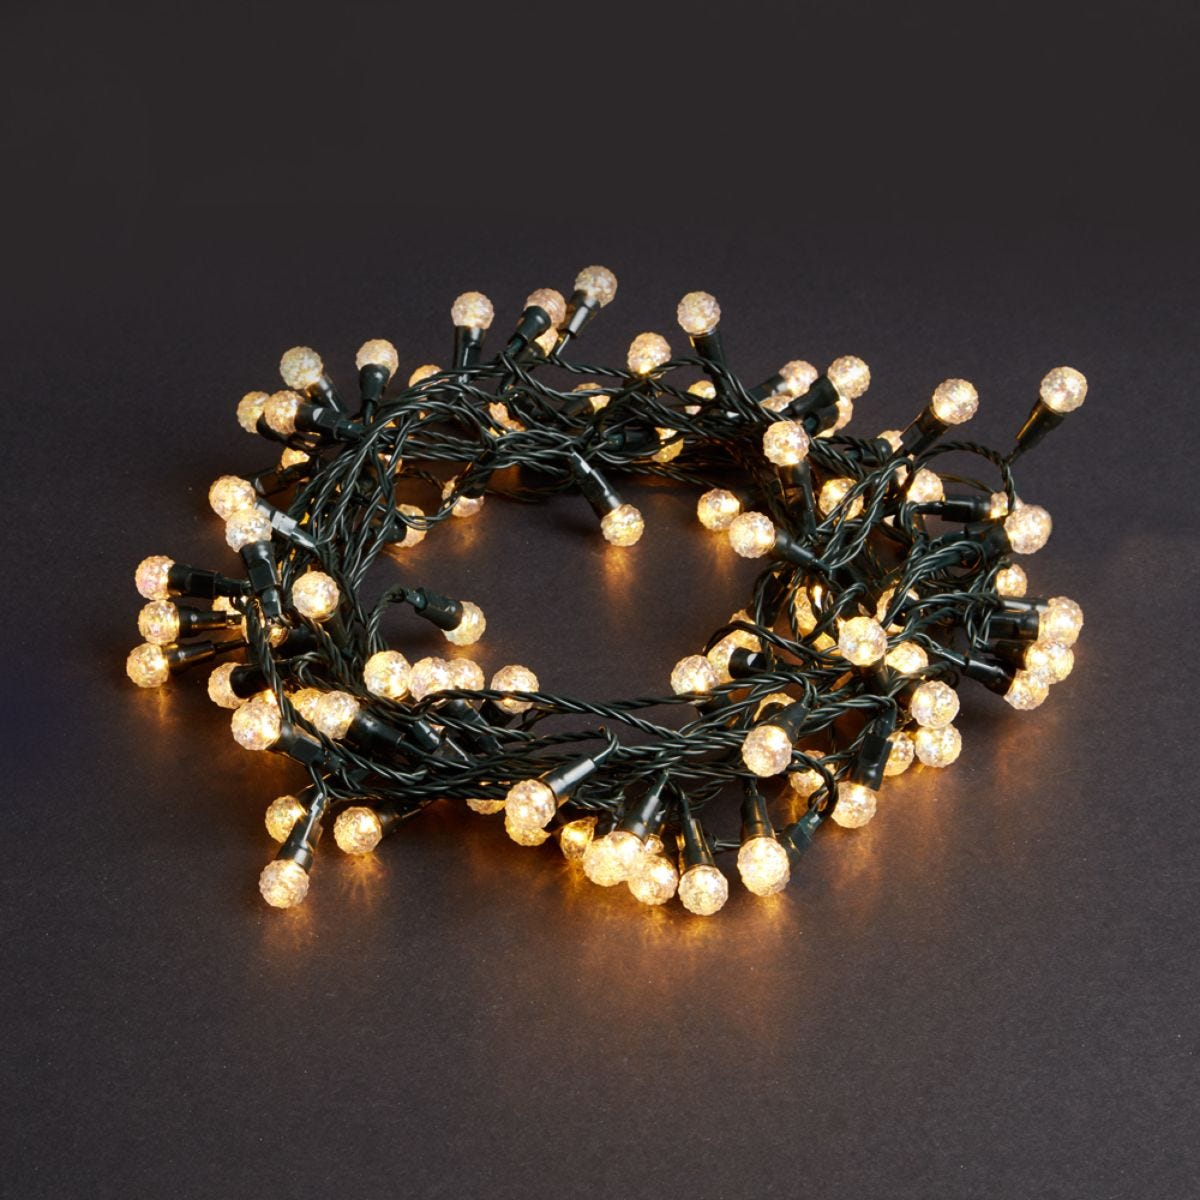 100 Low Voltage LED Crackle Berry Lights - Warm White